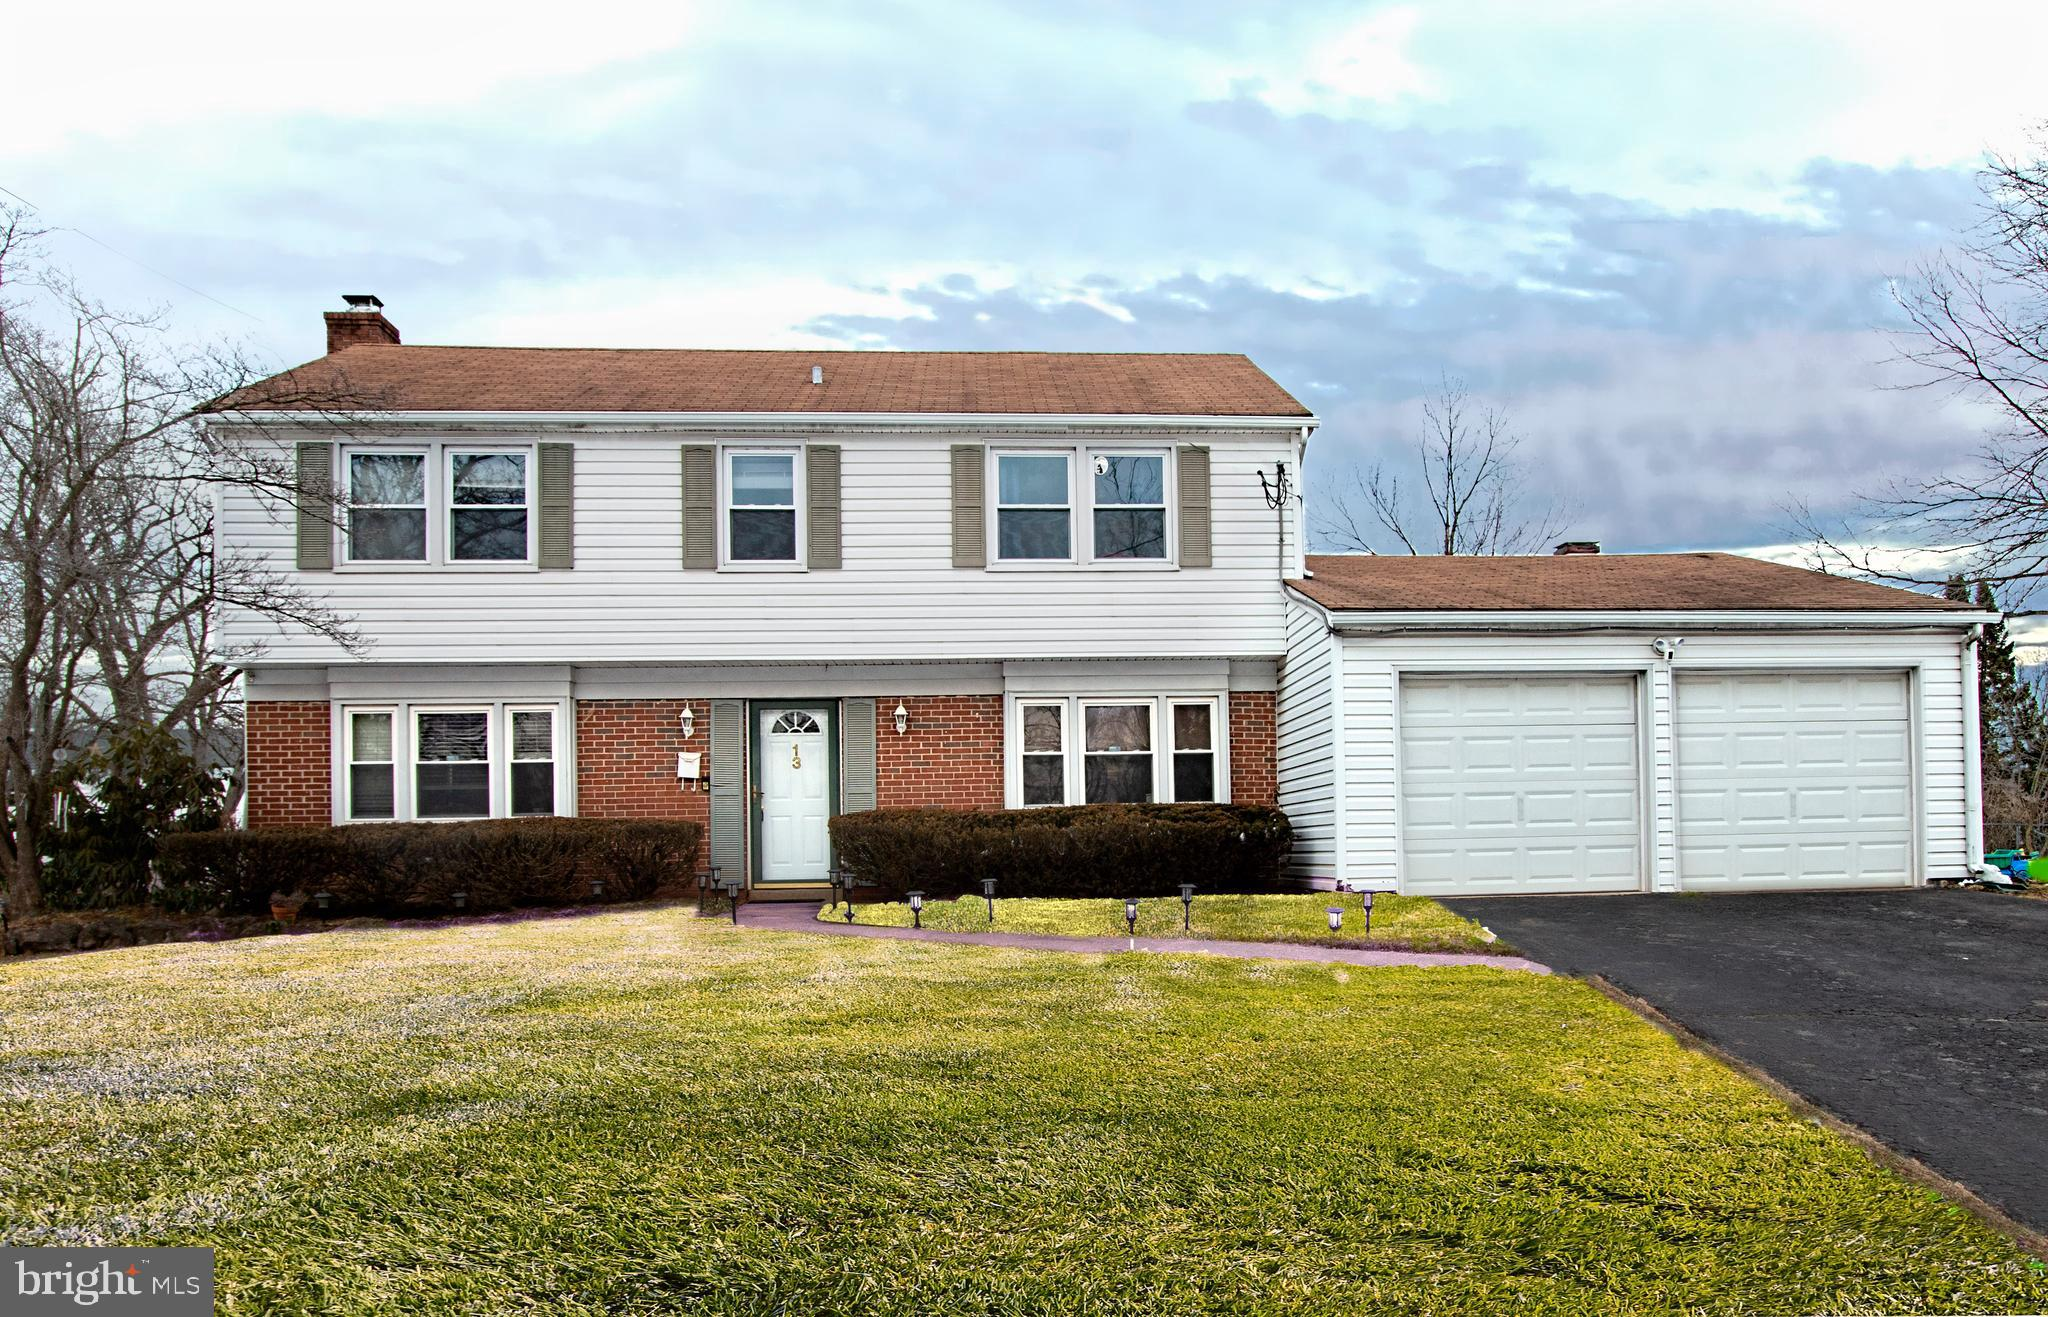 13 ORCHID, SOMERSET, NJ 08873